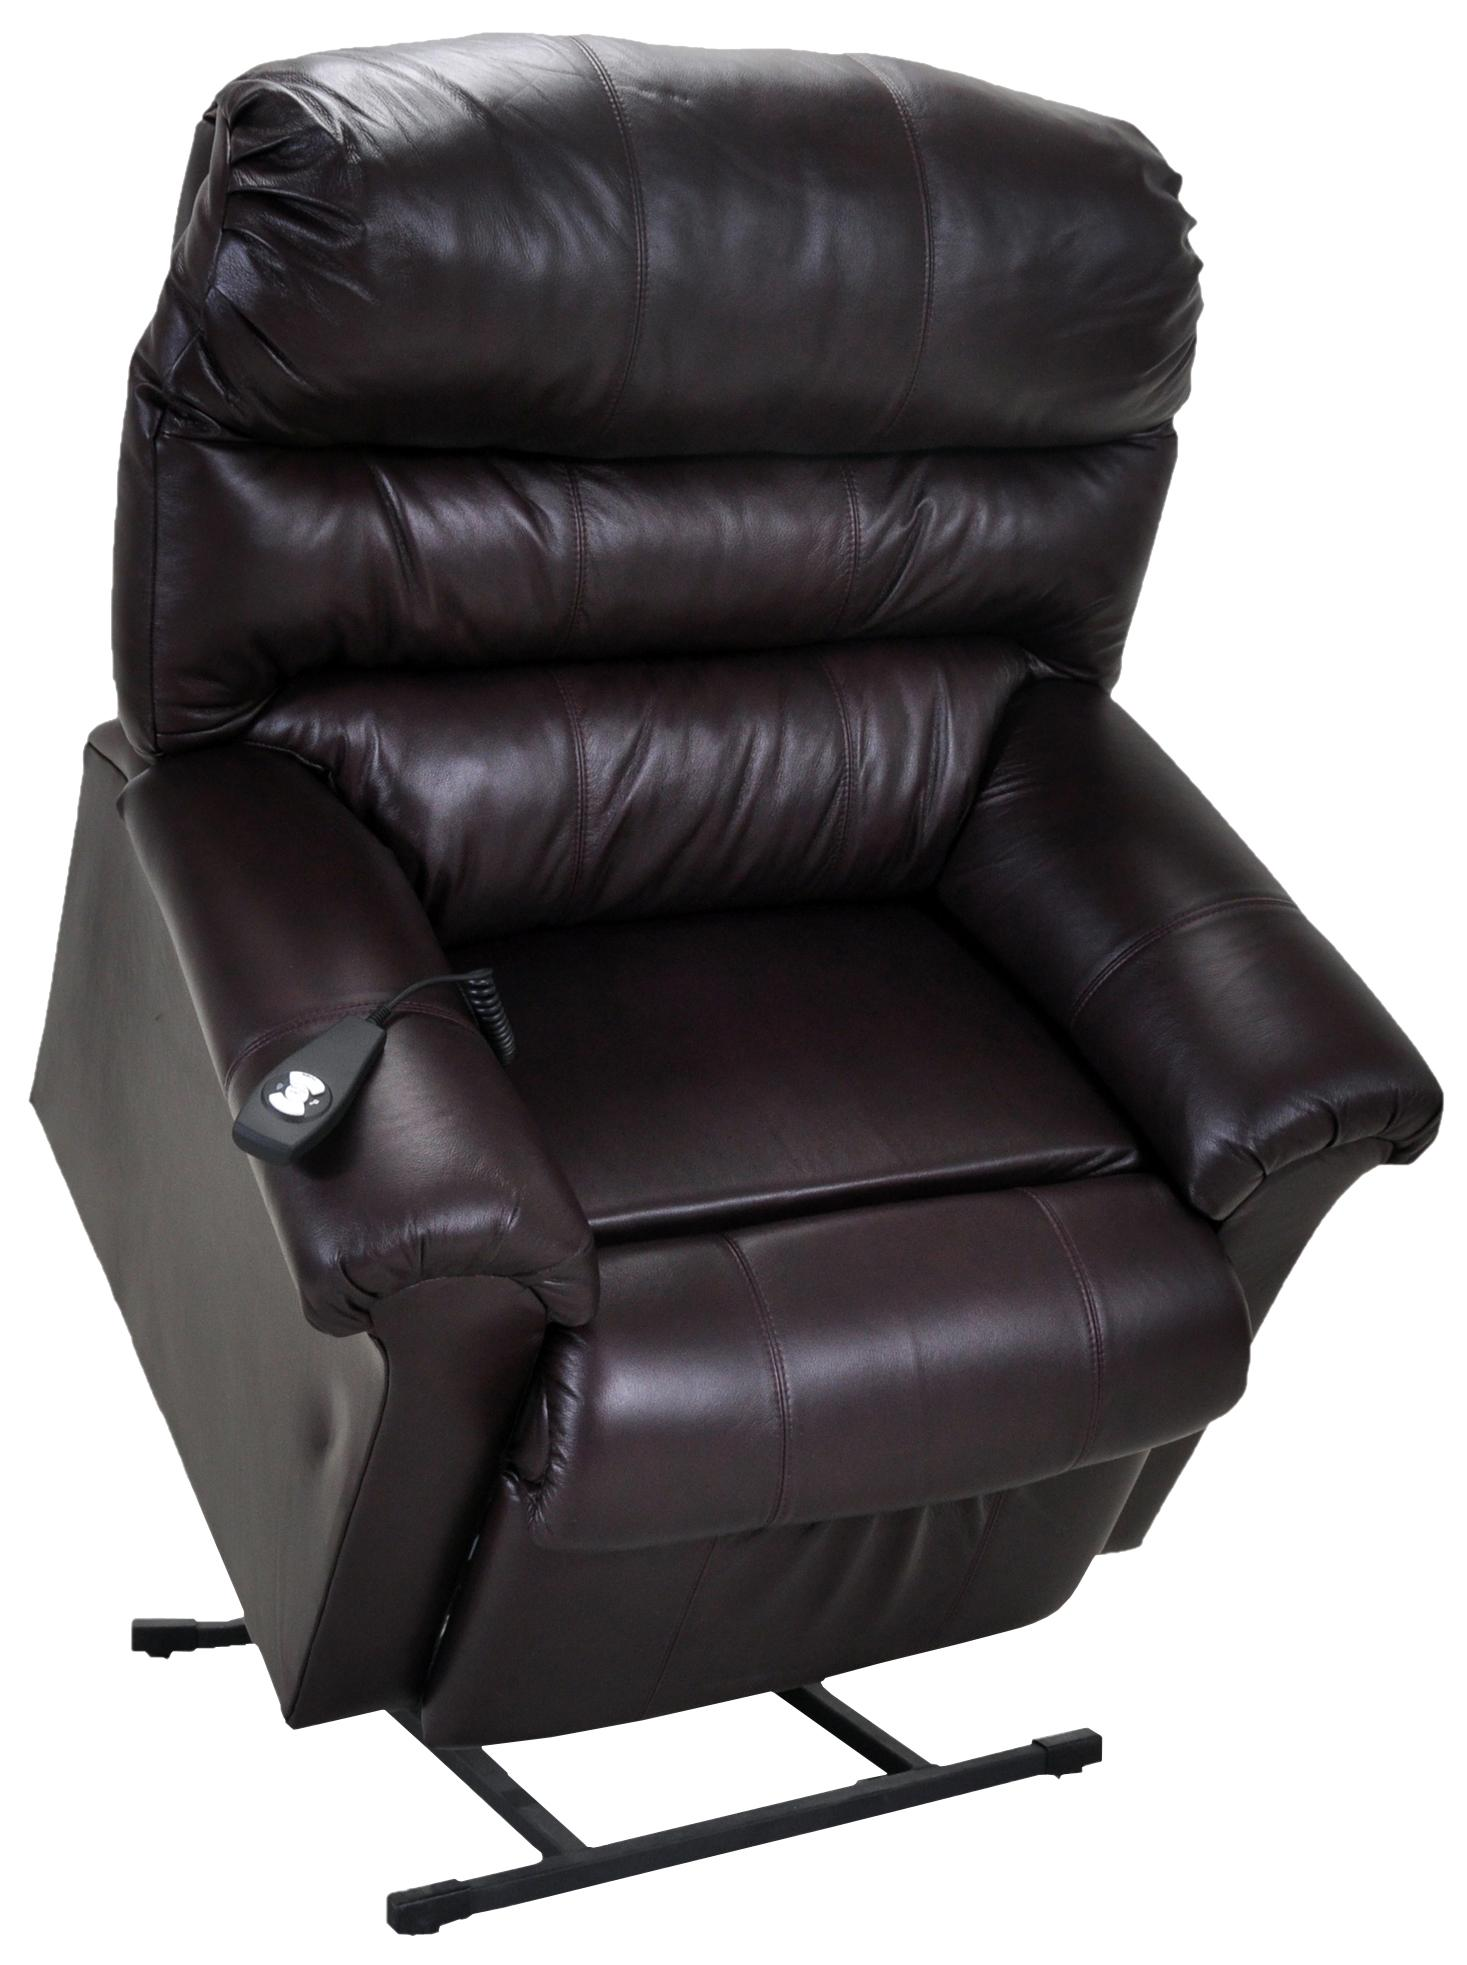 Lift Chairs Recliners Franklin Lift And Power Recliners 498 Lm 10 75 Chocolate